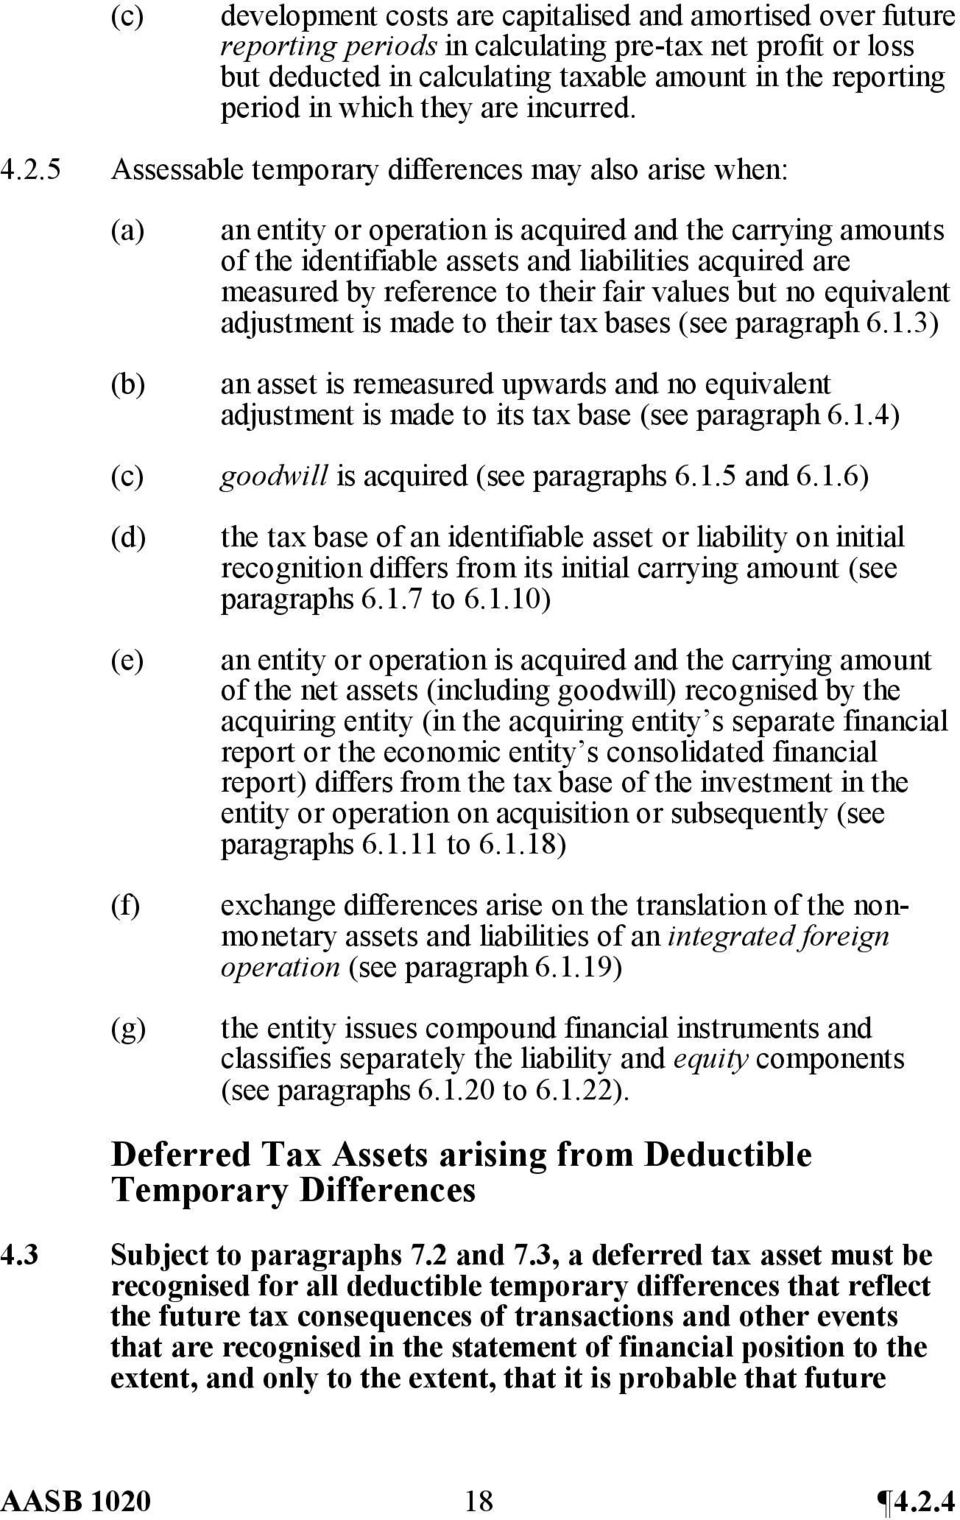 5 Assessable temporary differences may also arise when: (a) (b) an entity or operation is acquired and the carrying amounts of the identifiable assets and liabilities acquired are measured by